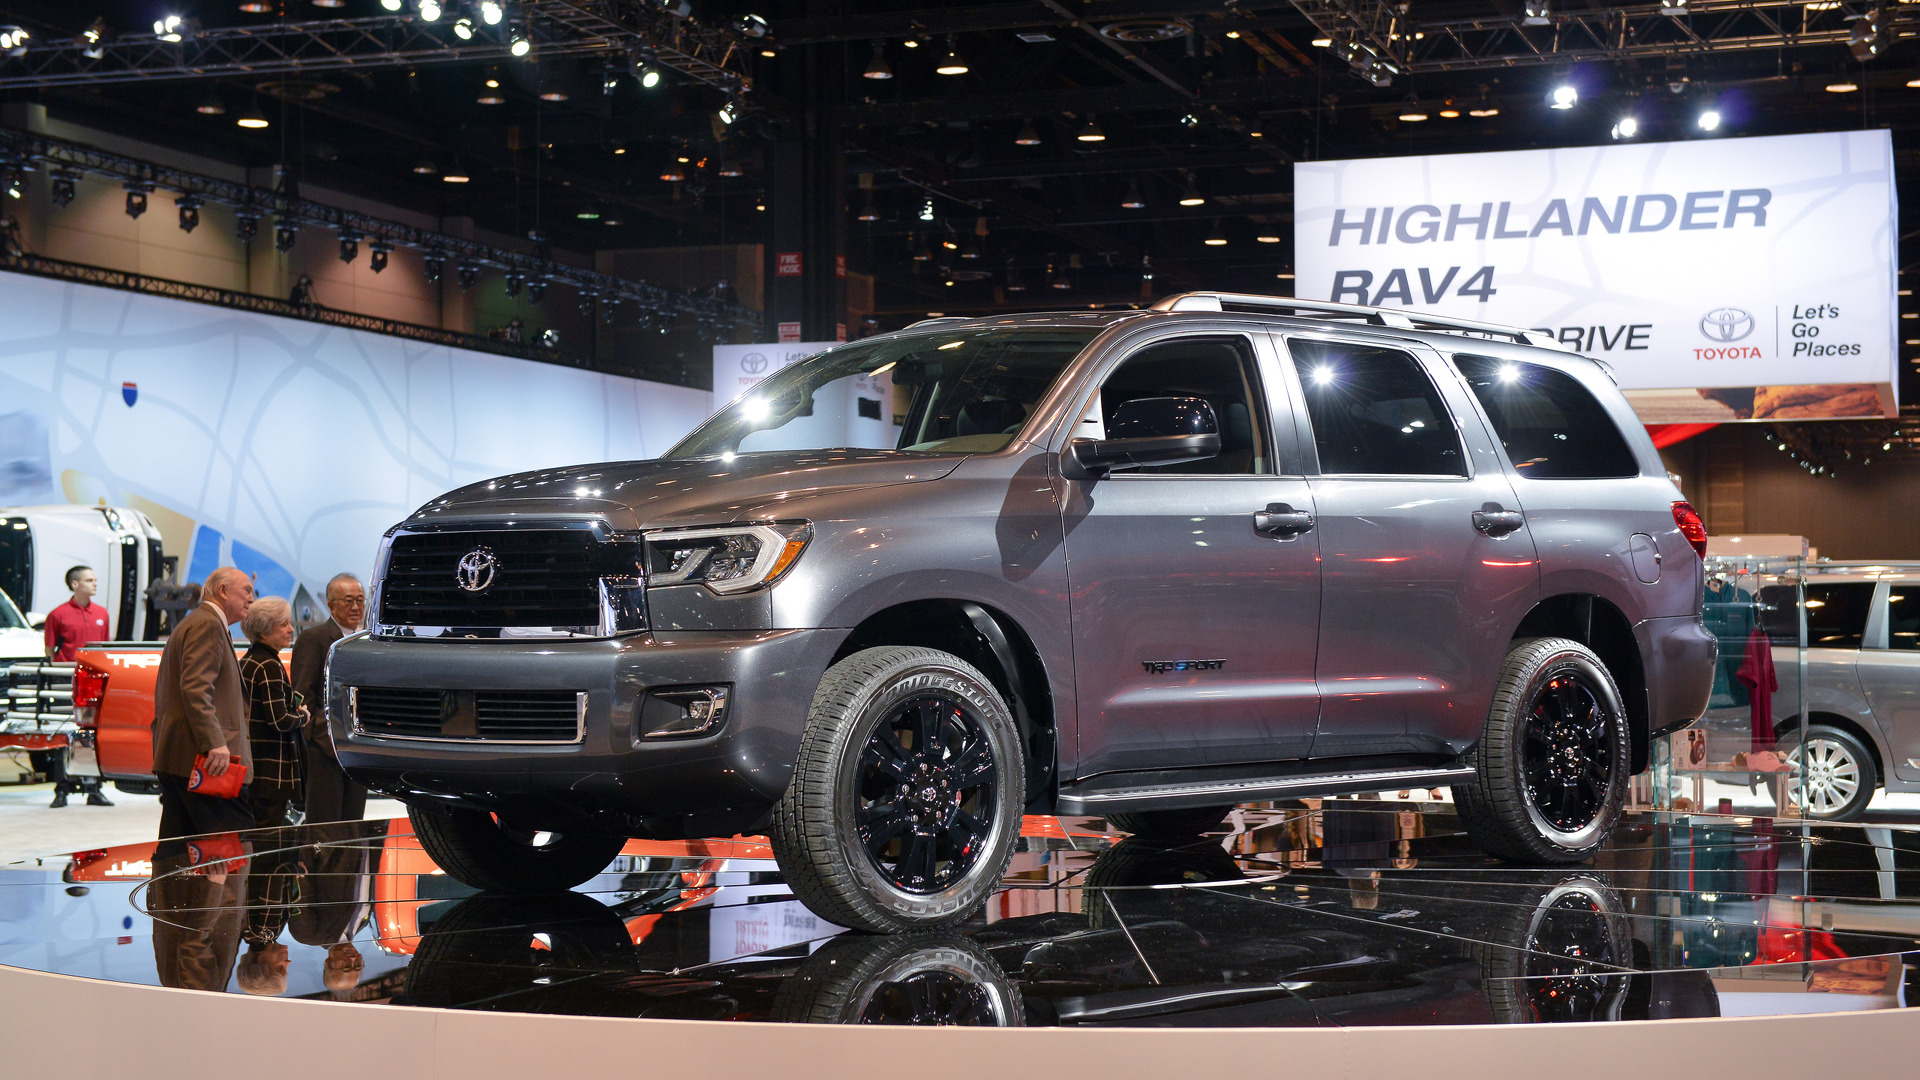 car parts website reddit with 2018 Toyota Sequoia Tundra Trdsport on Ford Mondeo Station Wagon First Photos moreover Hot Rod Style Signwriting in addition Plastic Injection Molding Part 13 further 2018 Toyota Sequoia Tundra Trdsport furthermore 2019 Mercedes Gle Spy Photos.